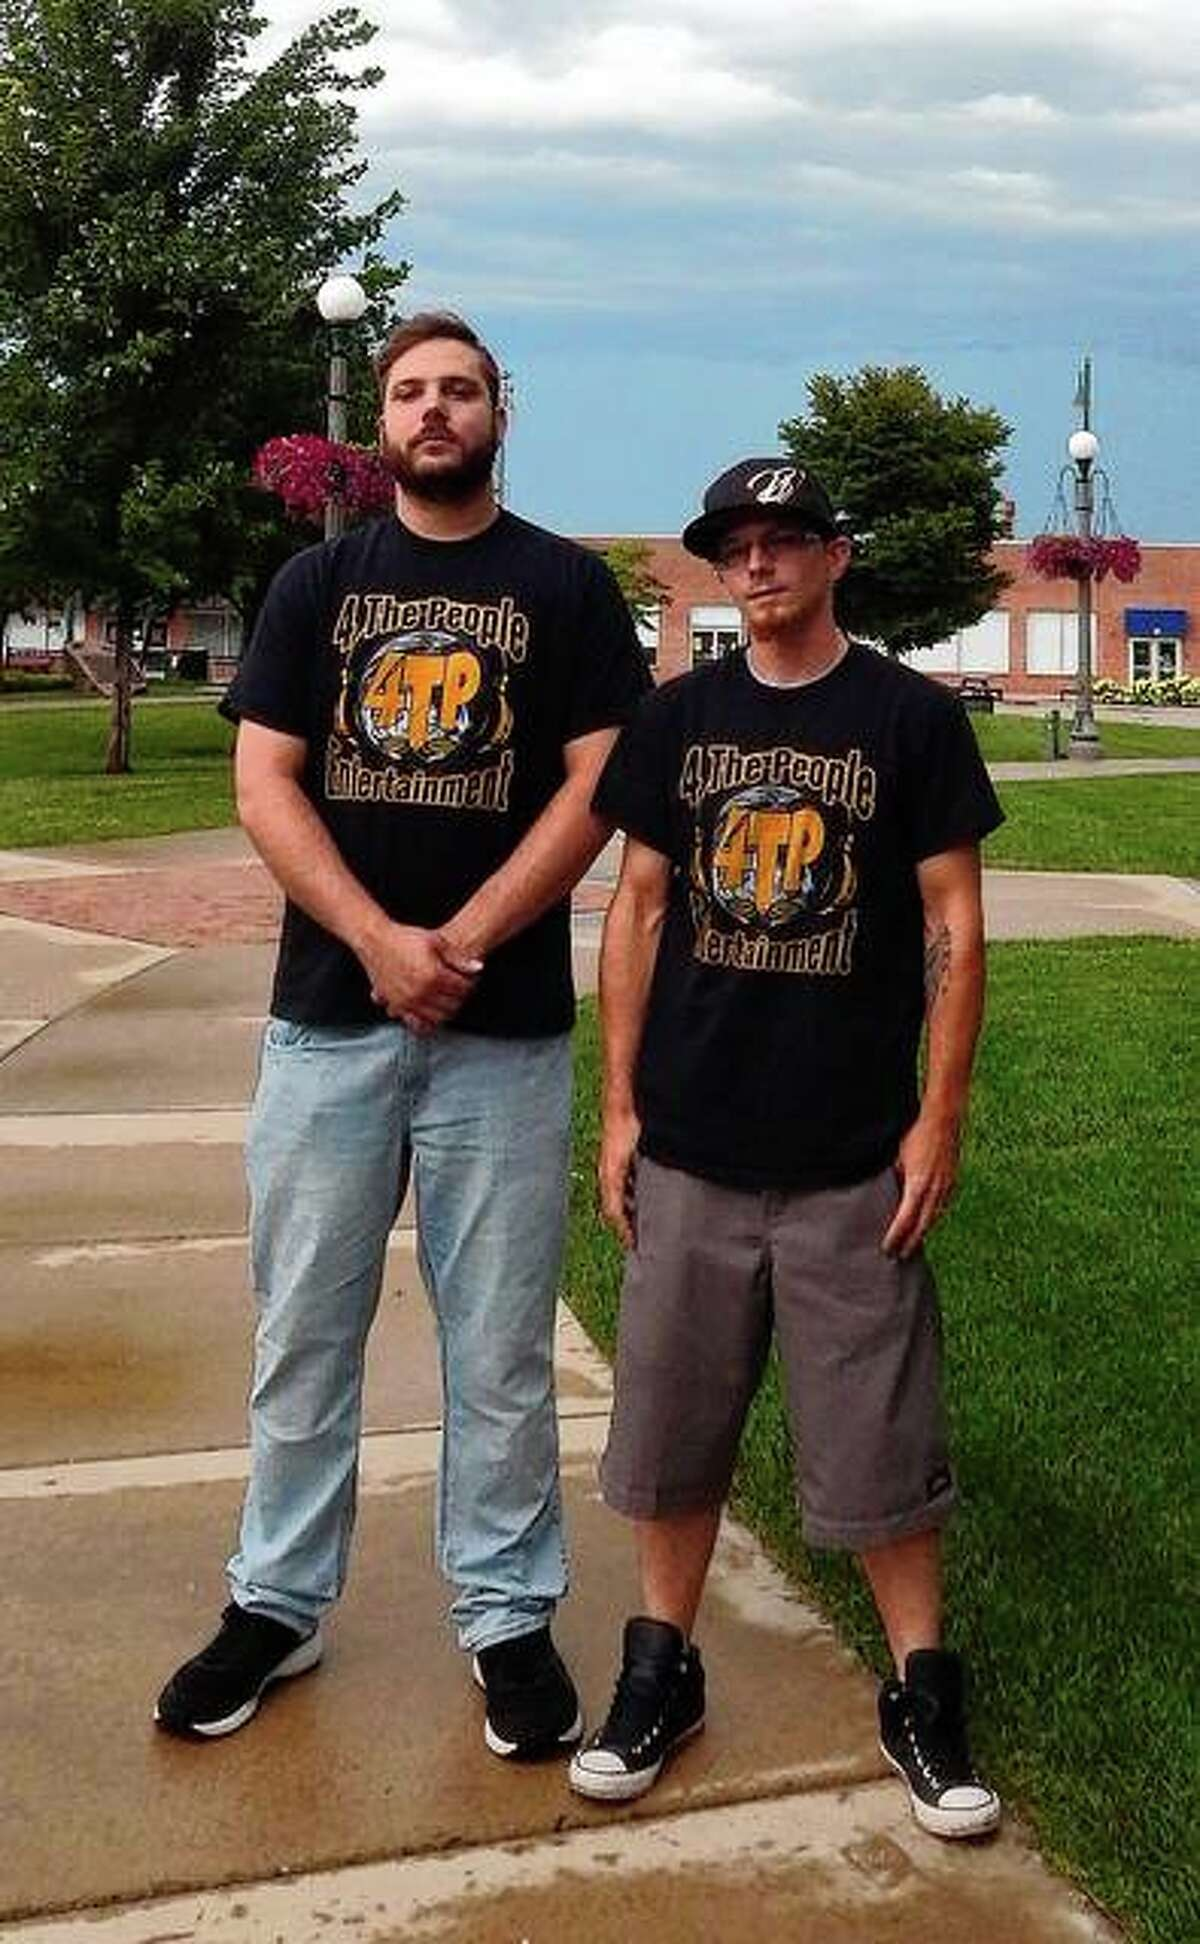 """Robby """"Robby Freak"""" DeLoach (left) and Joe """"Wicked Sweet"""" Wigger, both of Jacksonville, make up the rap/hip-hop duo FreakNSweet. They will be part of the lineup Thursday when Oscar-winning rapper Crunchy Black visits Jacksonville for a show at Area 51."""